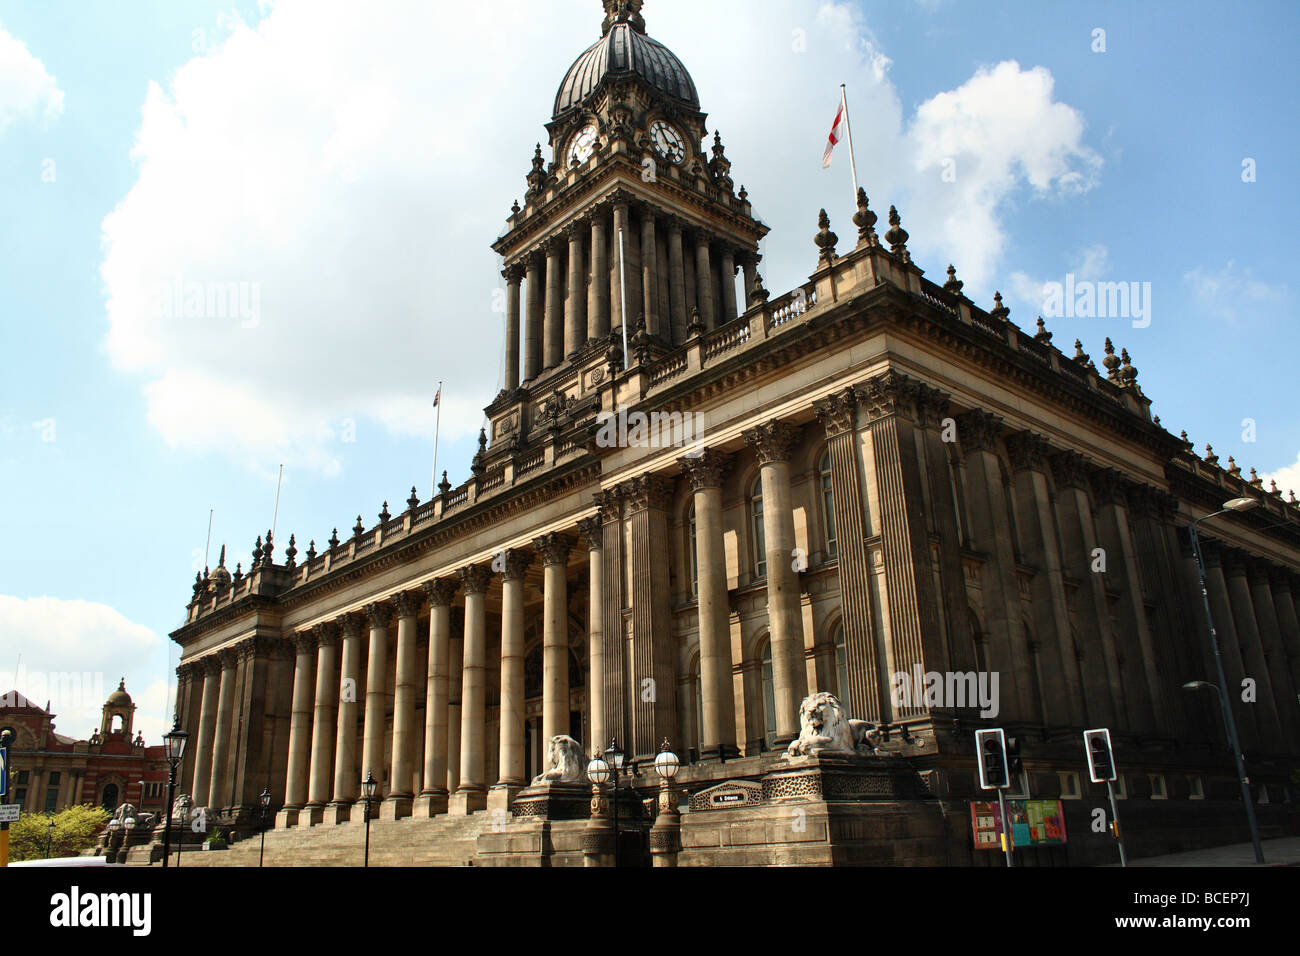 Leeds City Hall designed by Cuthbert Brodick. Leeds Town Hall was built between 1853 and 1858 in Park Lane (now - Stock Image